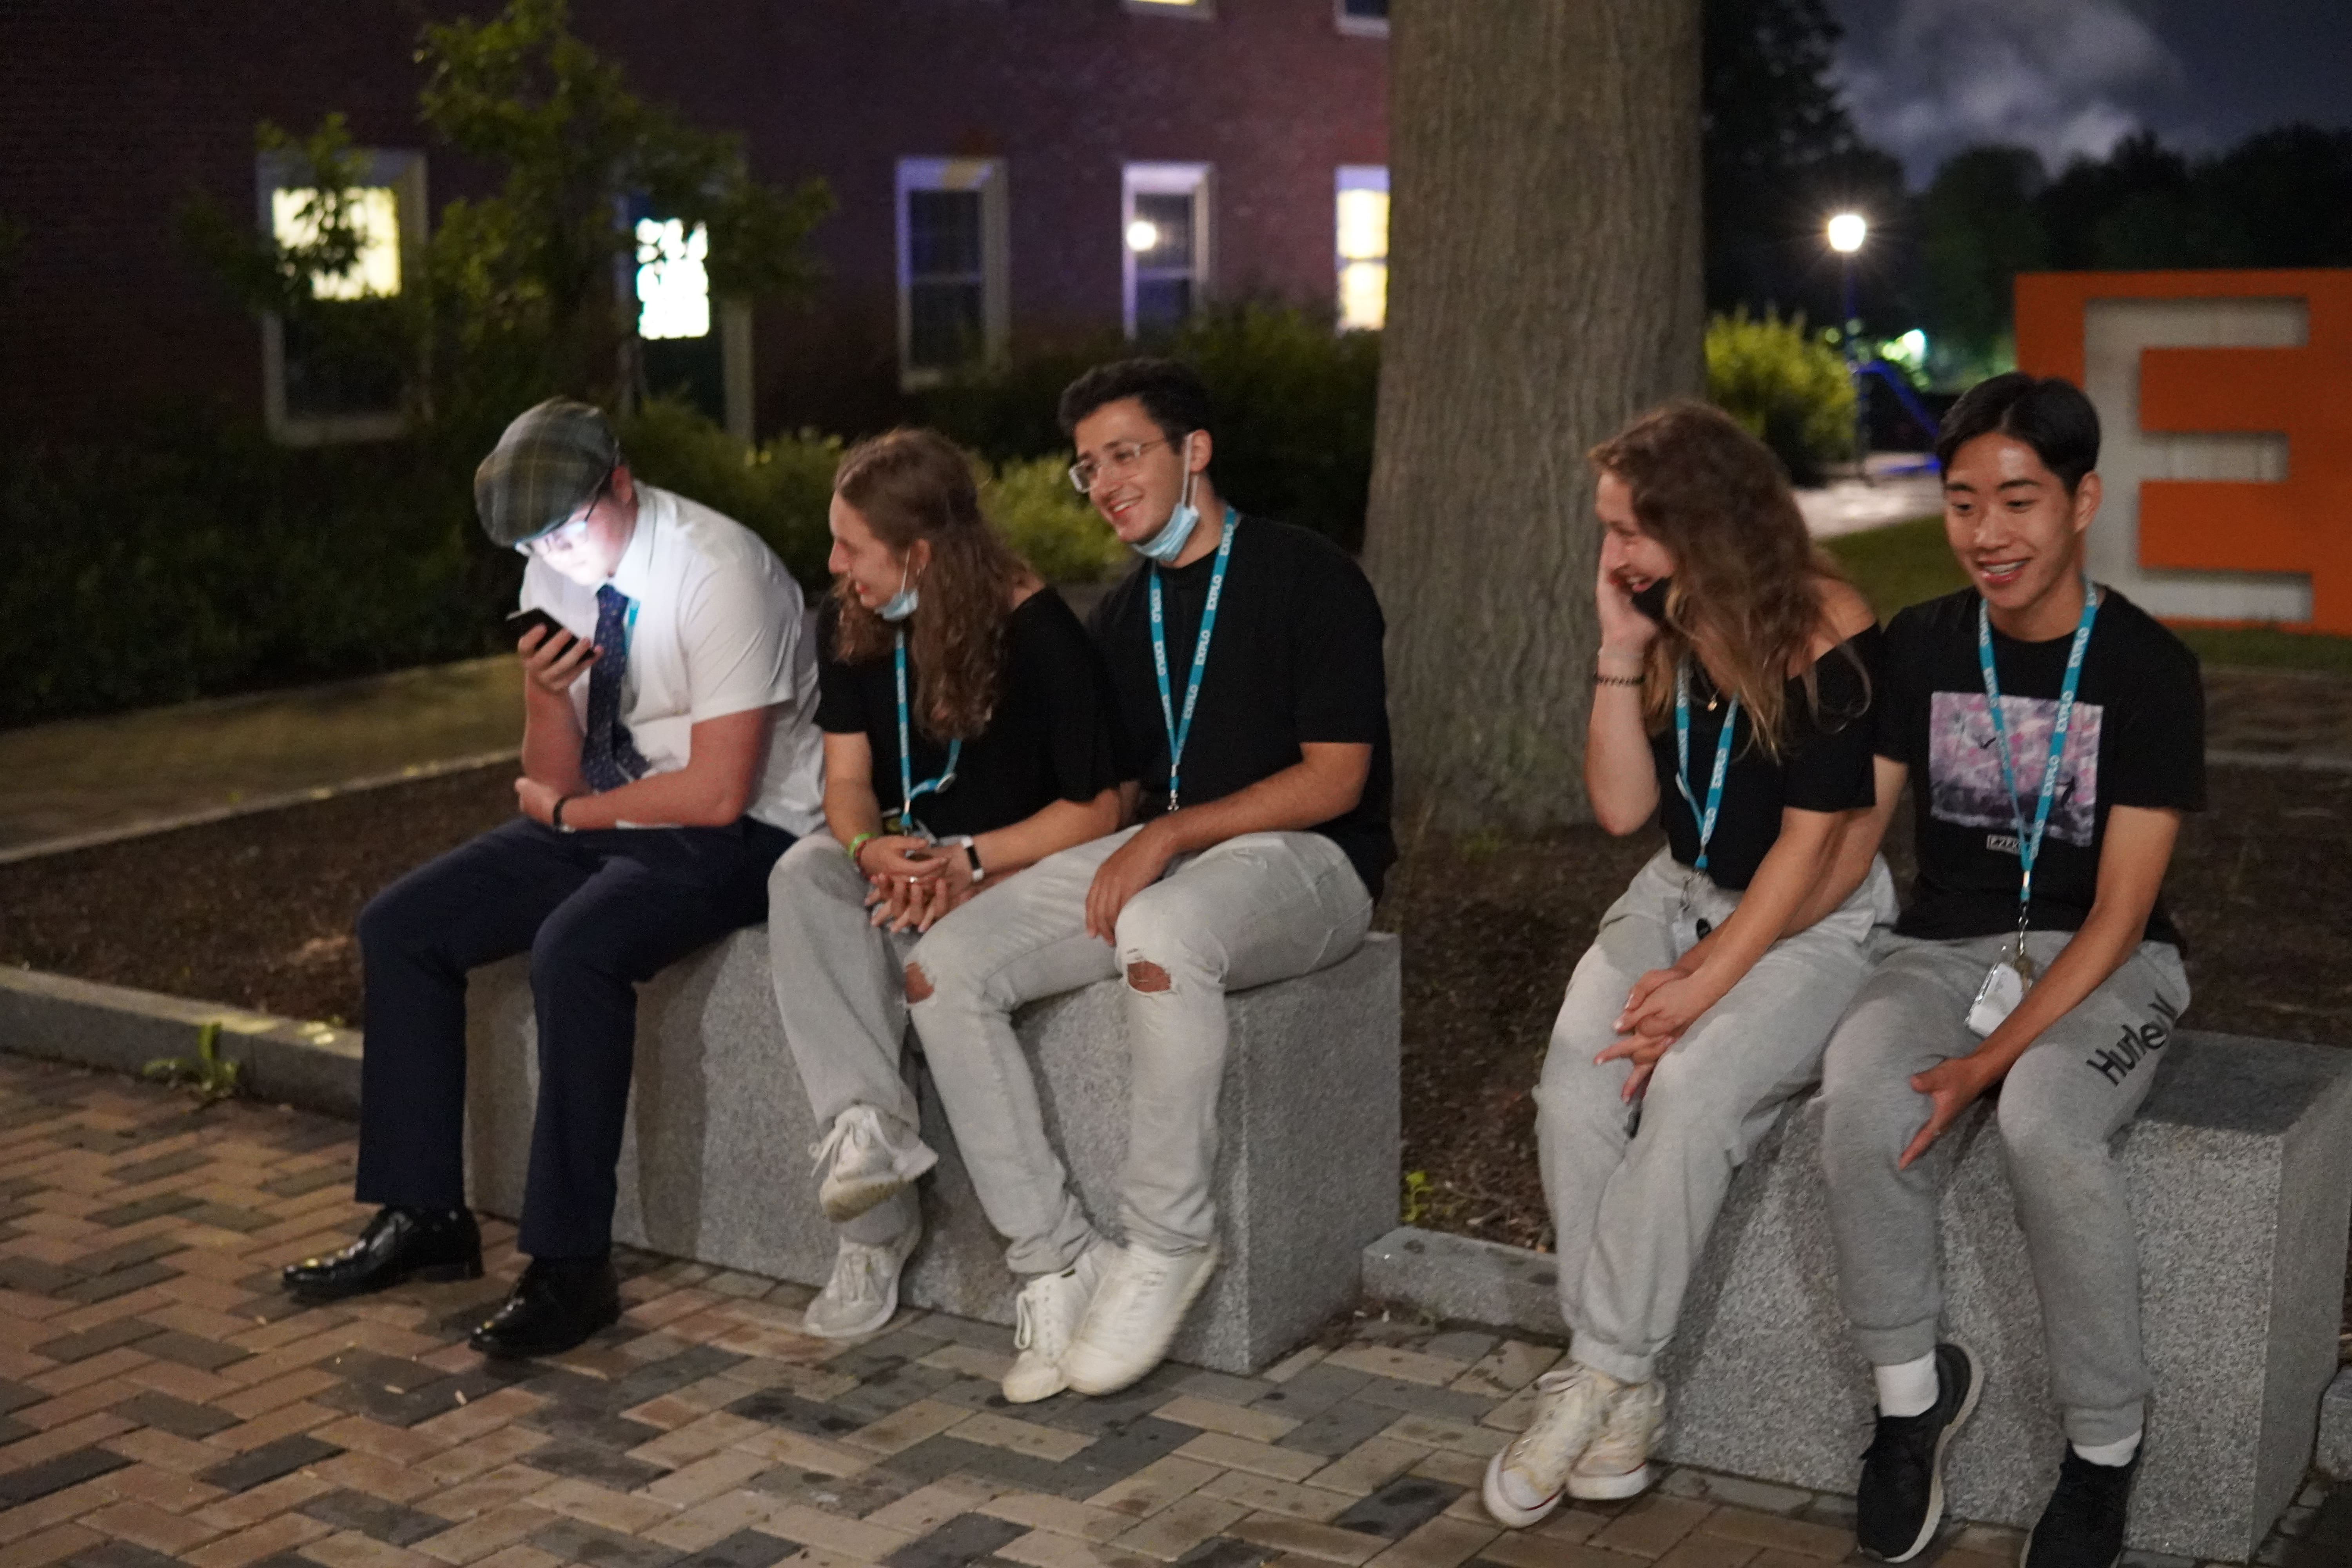 Five students sit on stone blocks outside. Two couples are holding hands and the fifth person is on their phone.